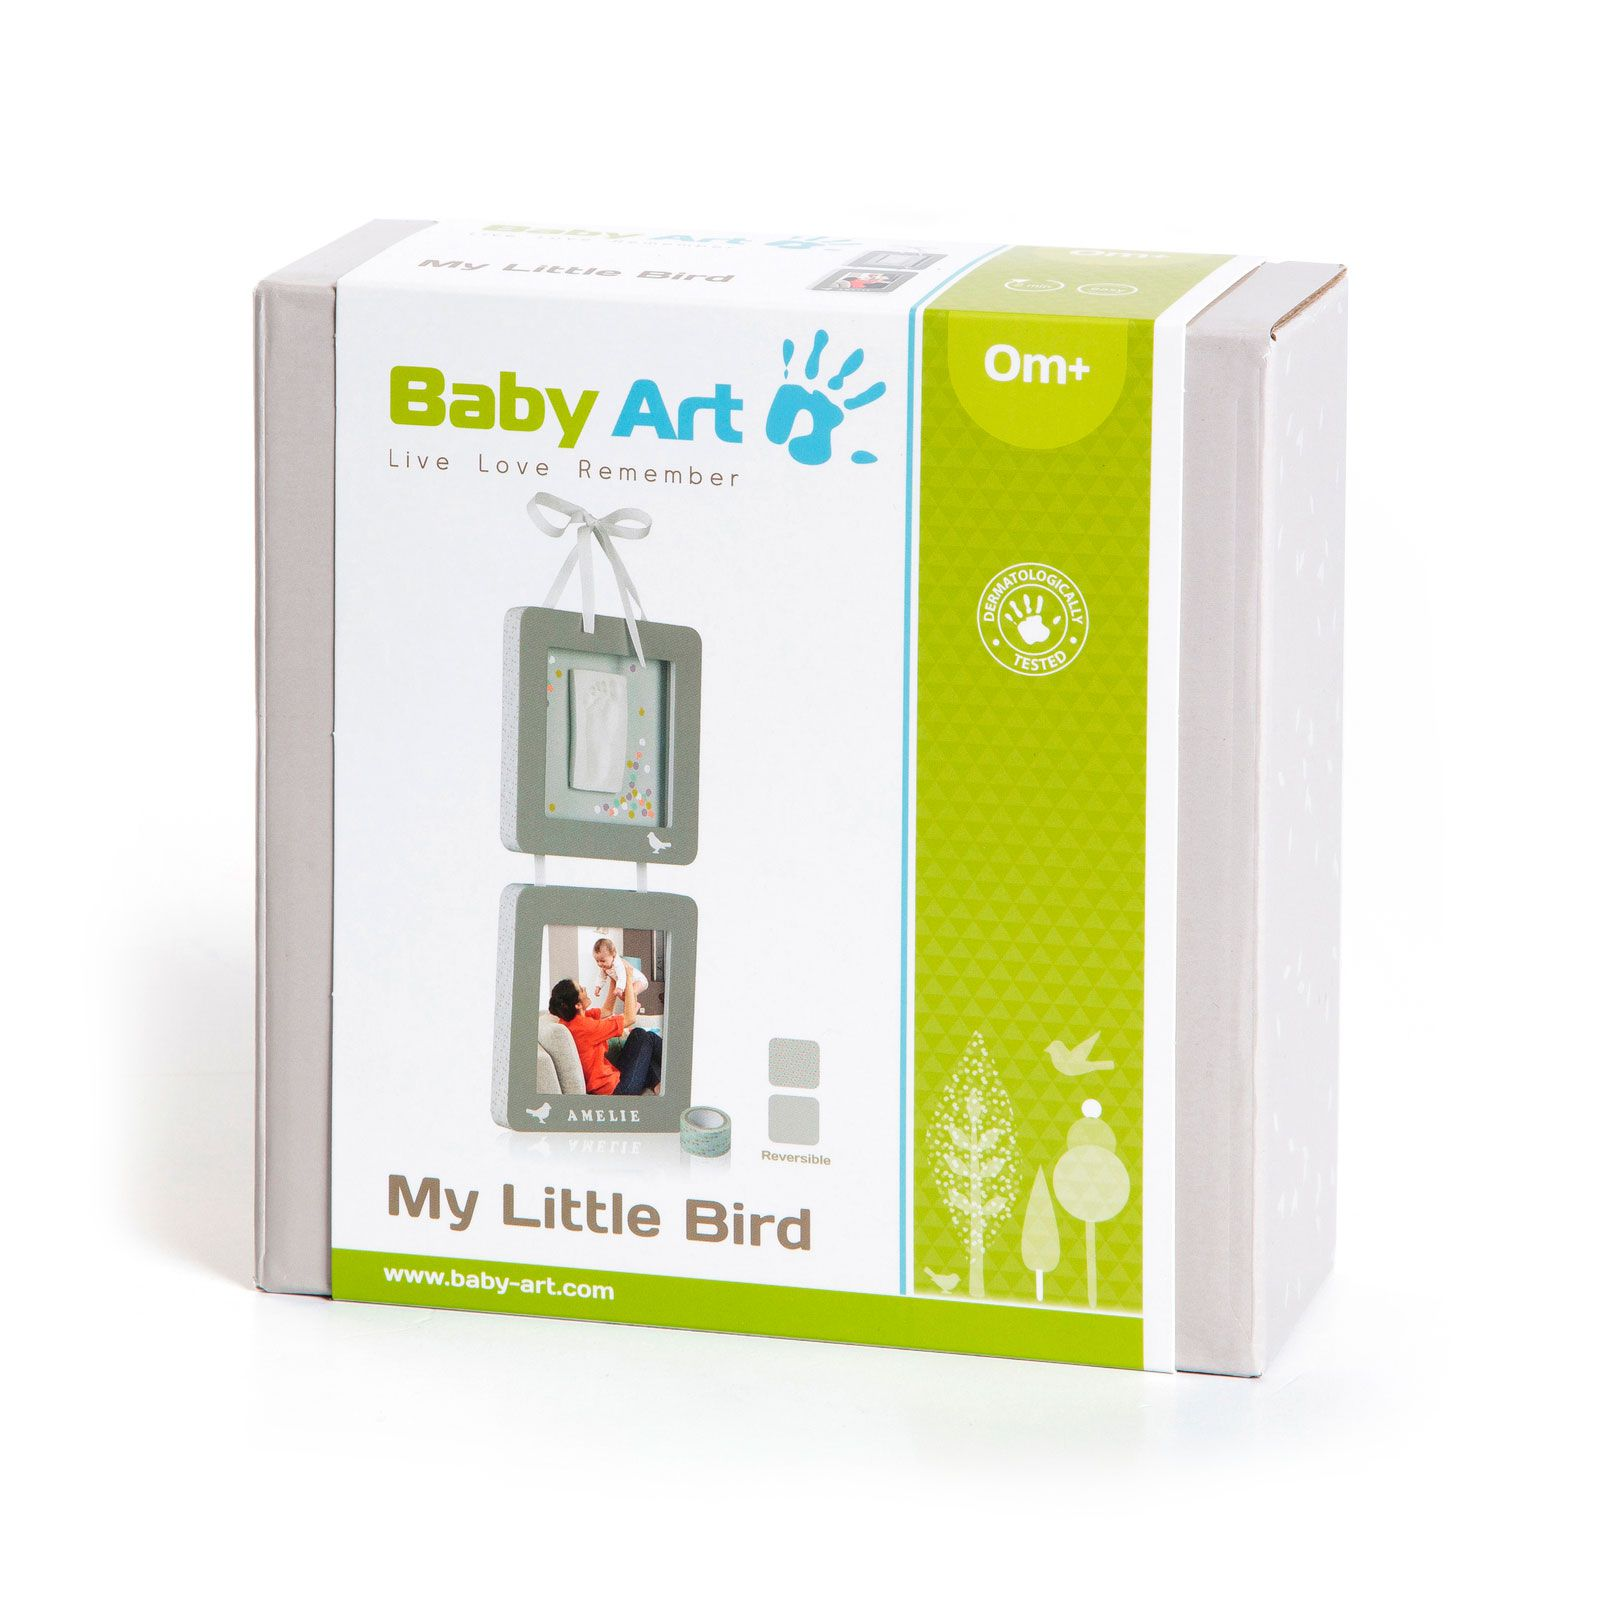 My Little Bird Cor Única - Baby Art Ref Imp91443